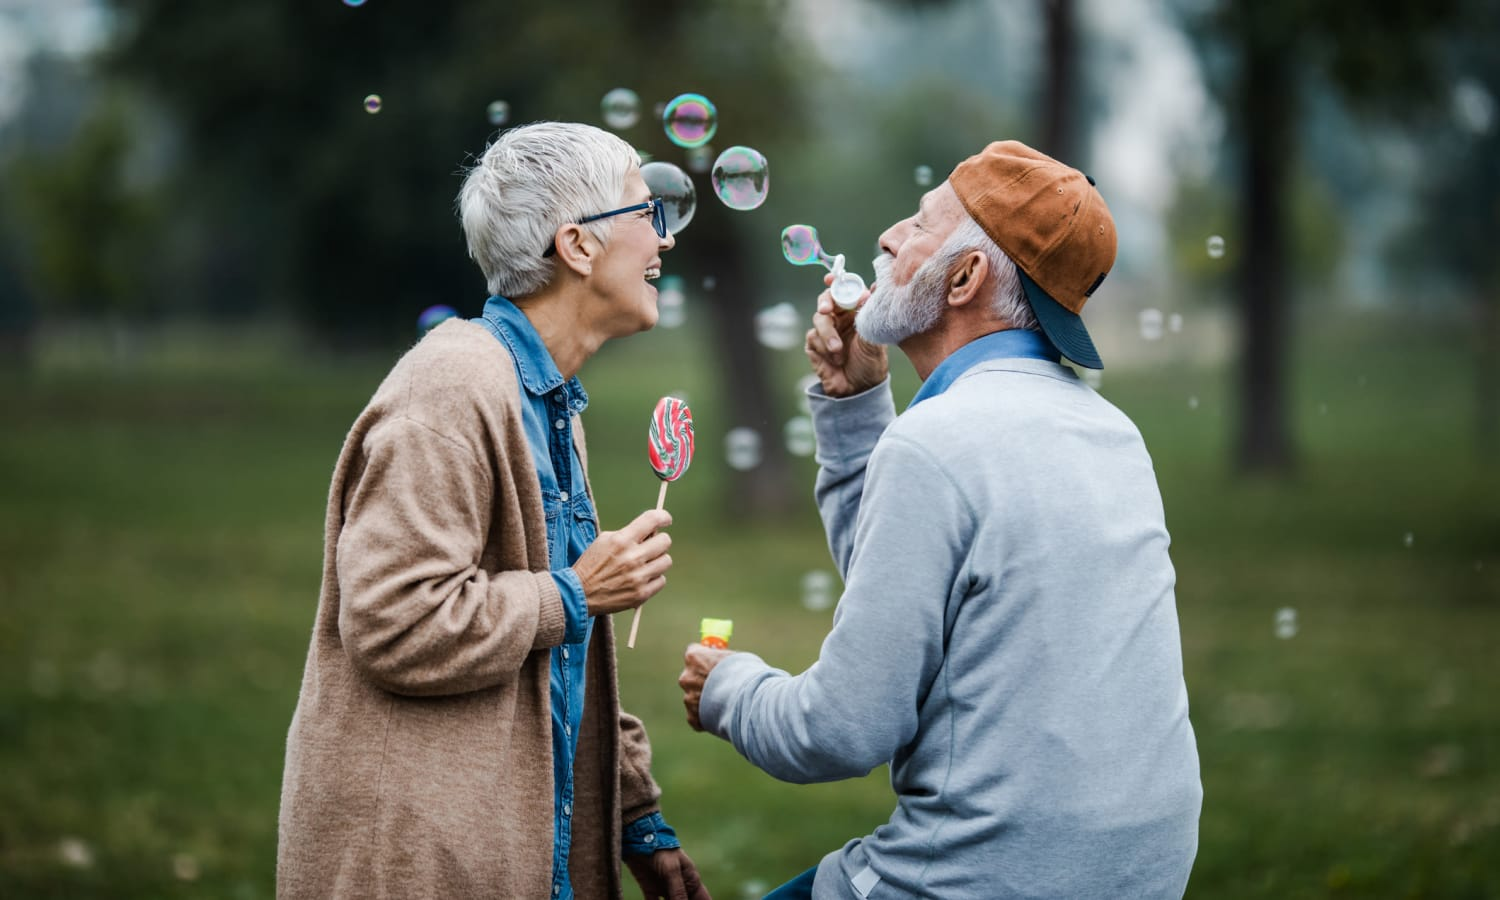 Couple blowing bubbles at Farmington Square Salem in Salem, Oregon